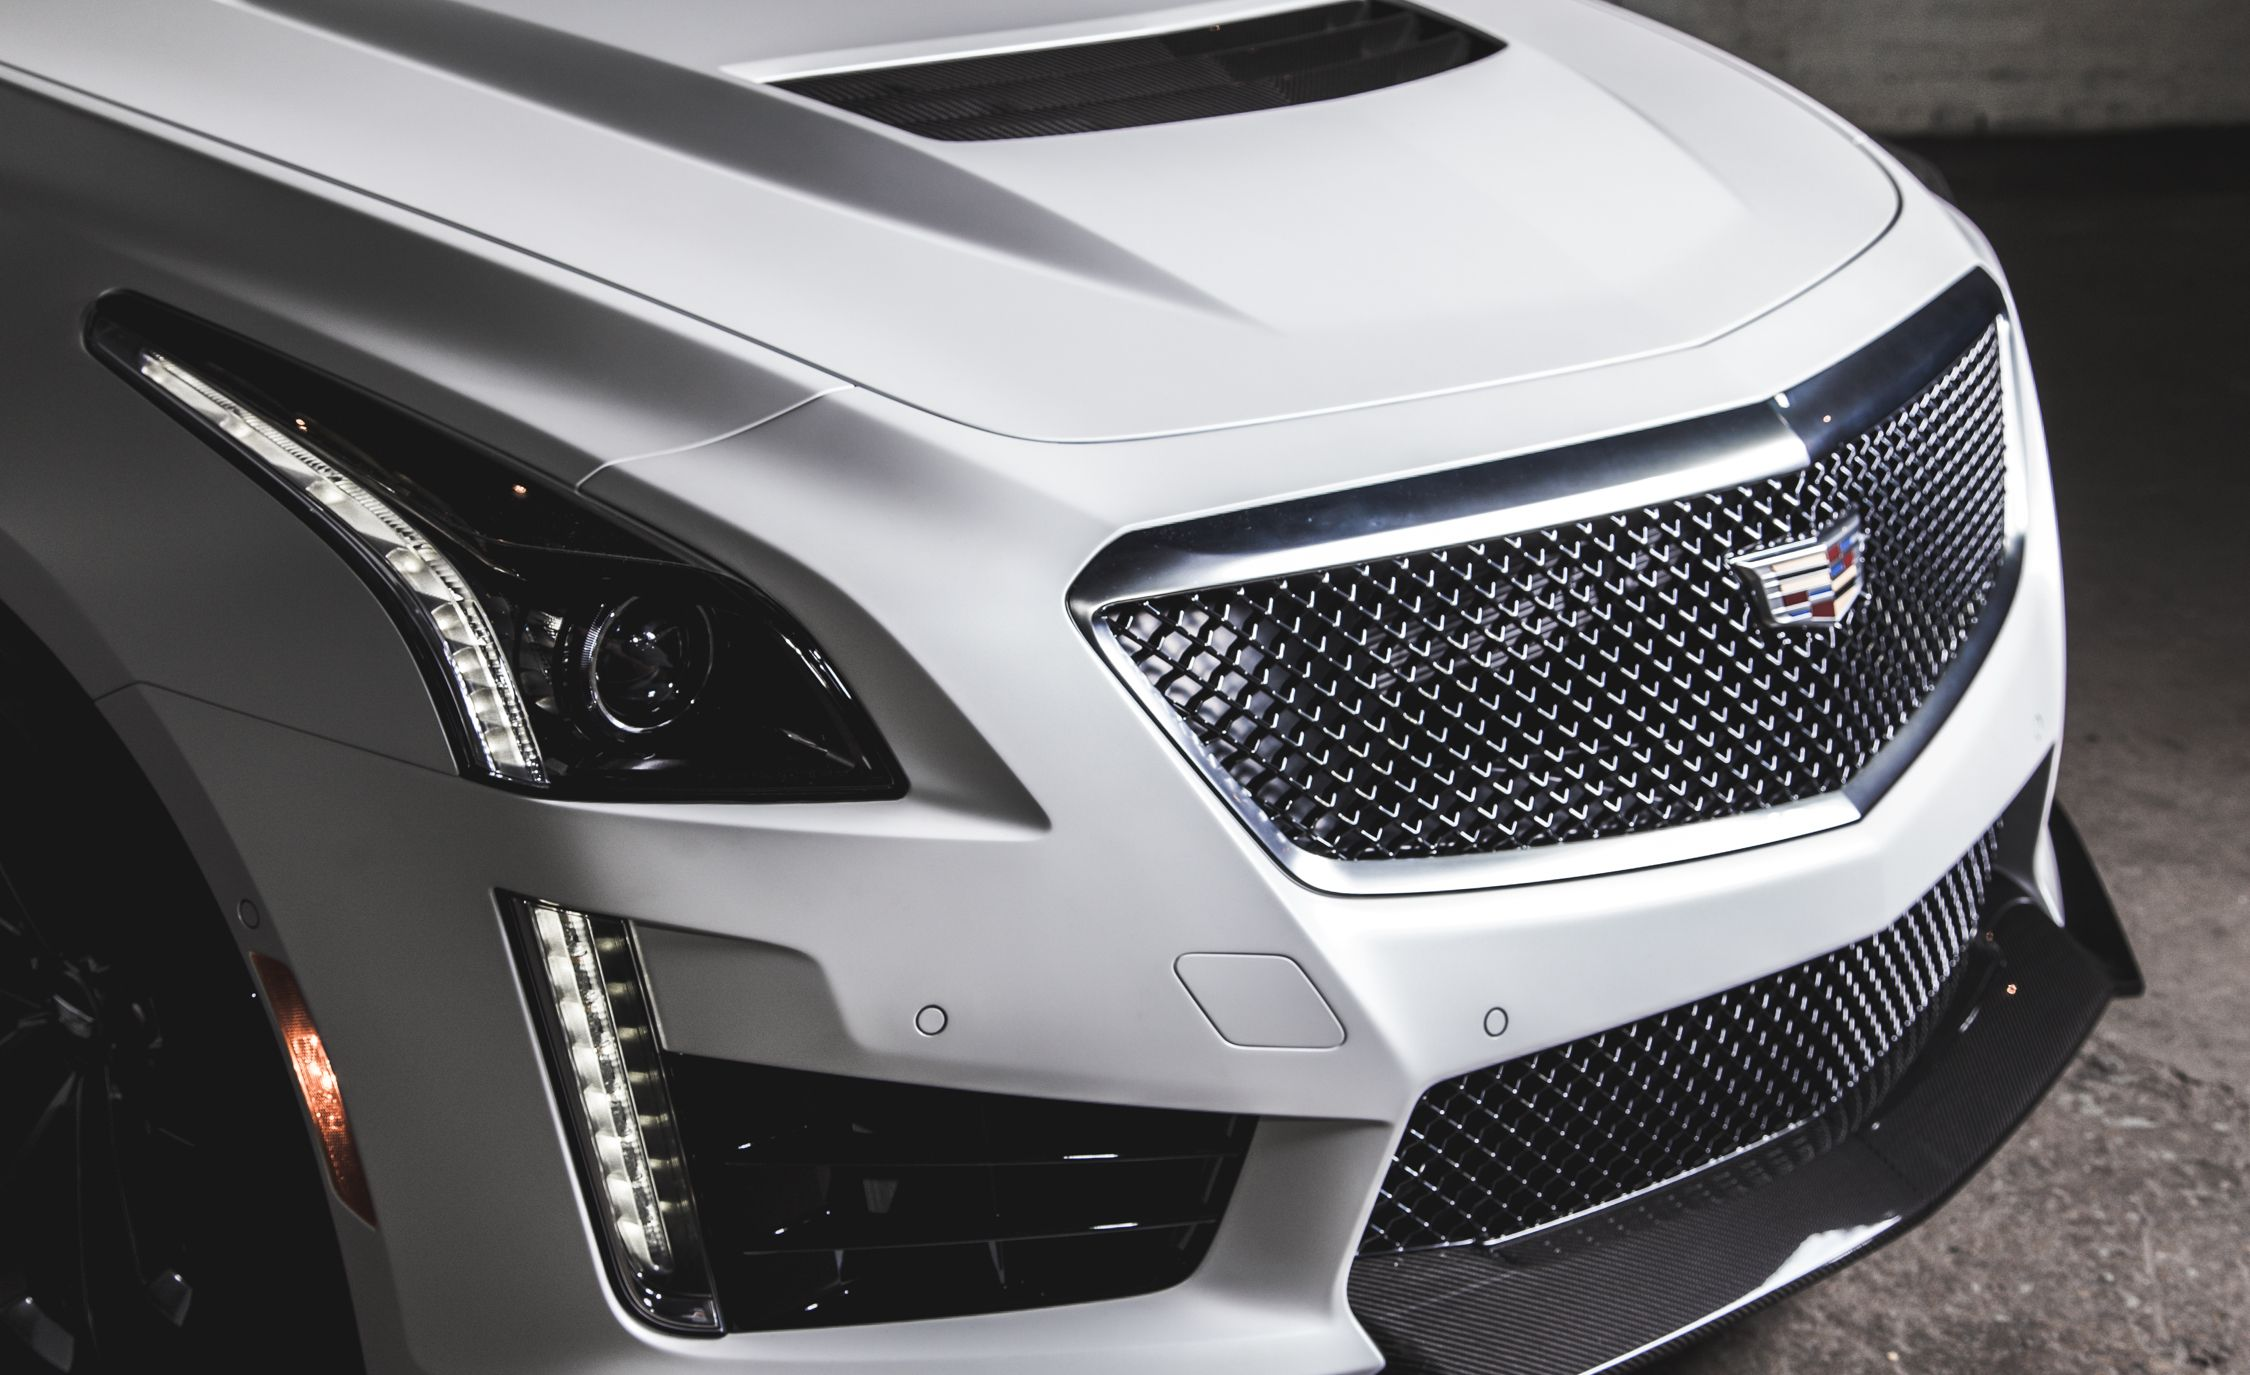 15 Things You Need to Know About the 2016 Cadillac CTSV Sedan